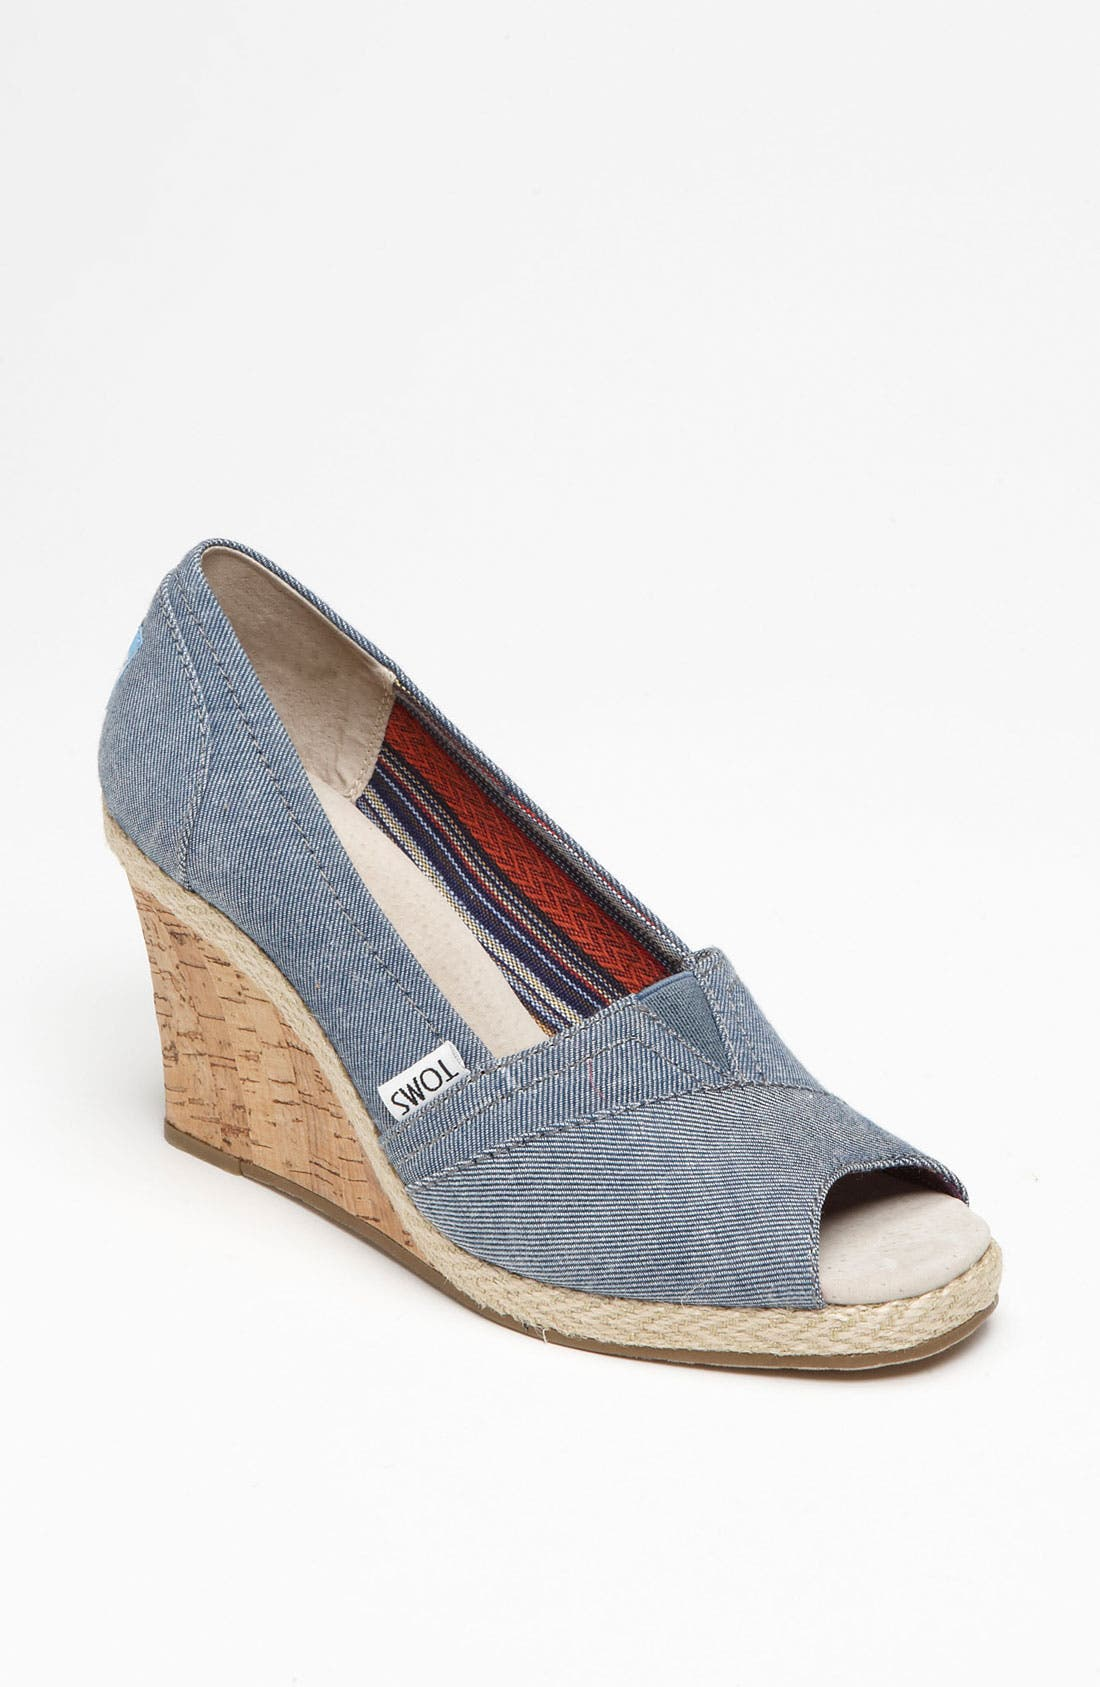 Alternate Image 1 Selected - TOMS 'Seren' Chambray Wedge (Women)